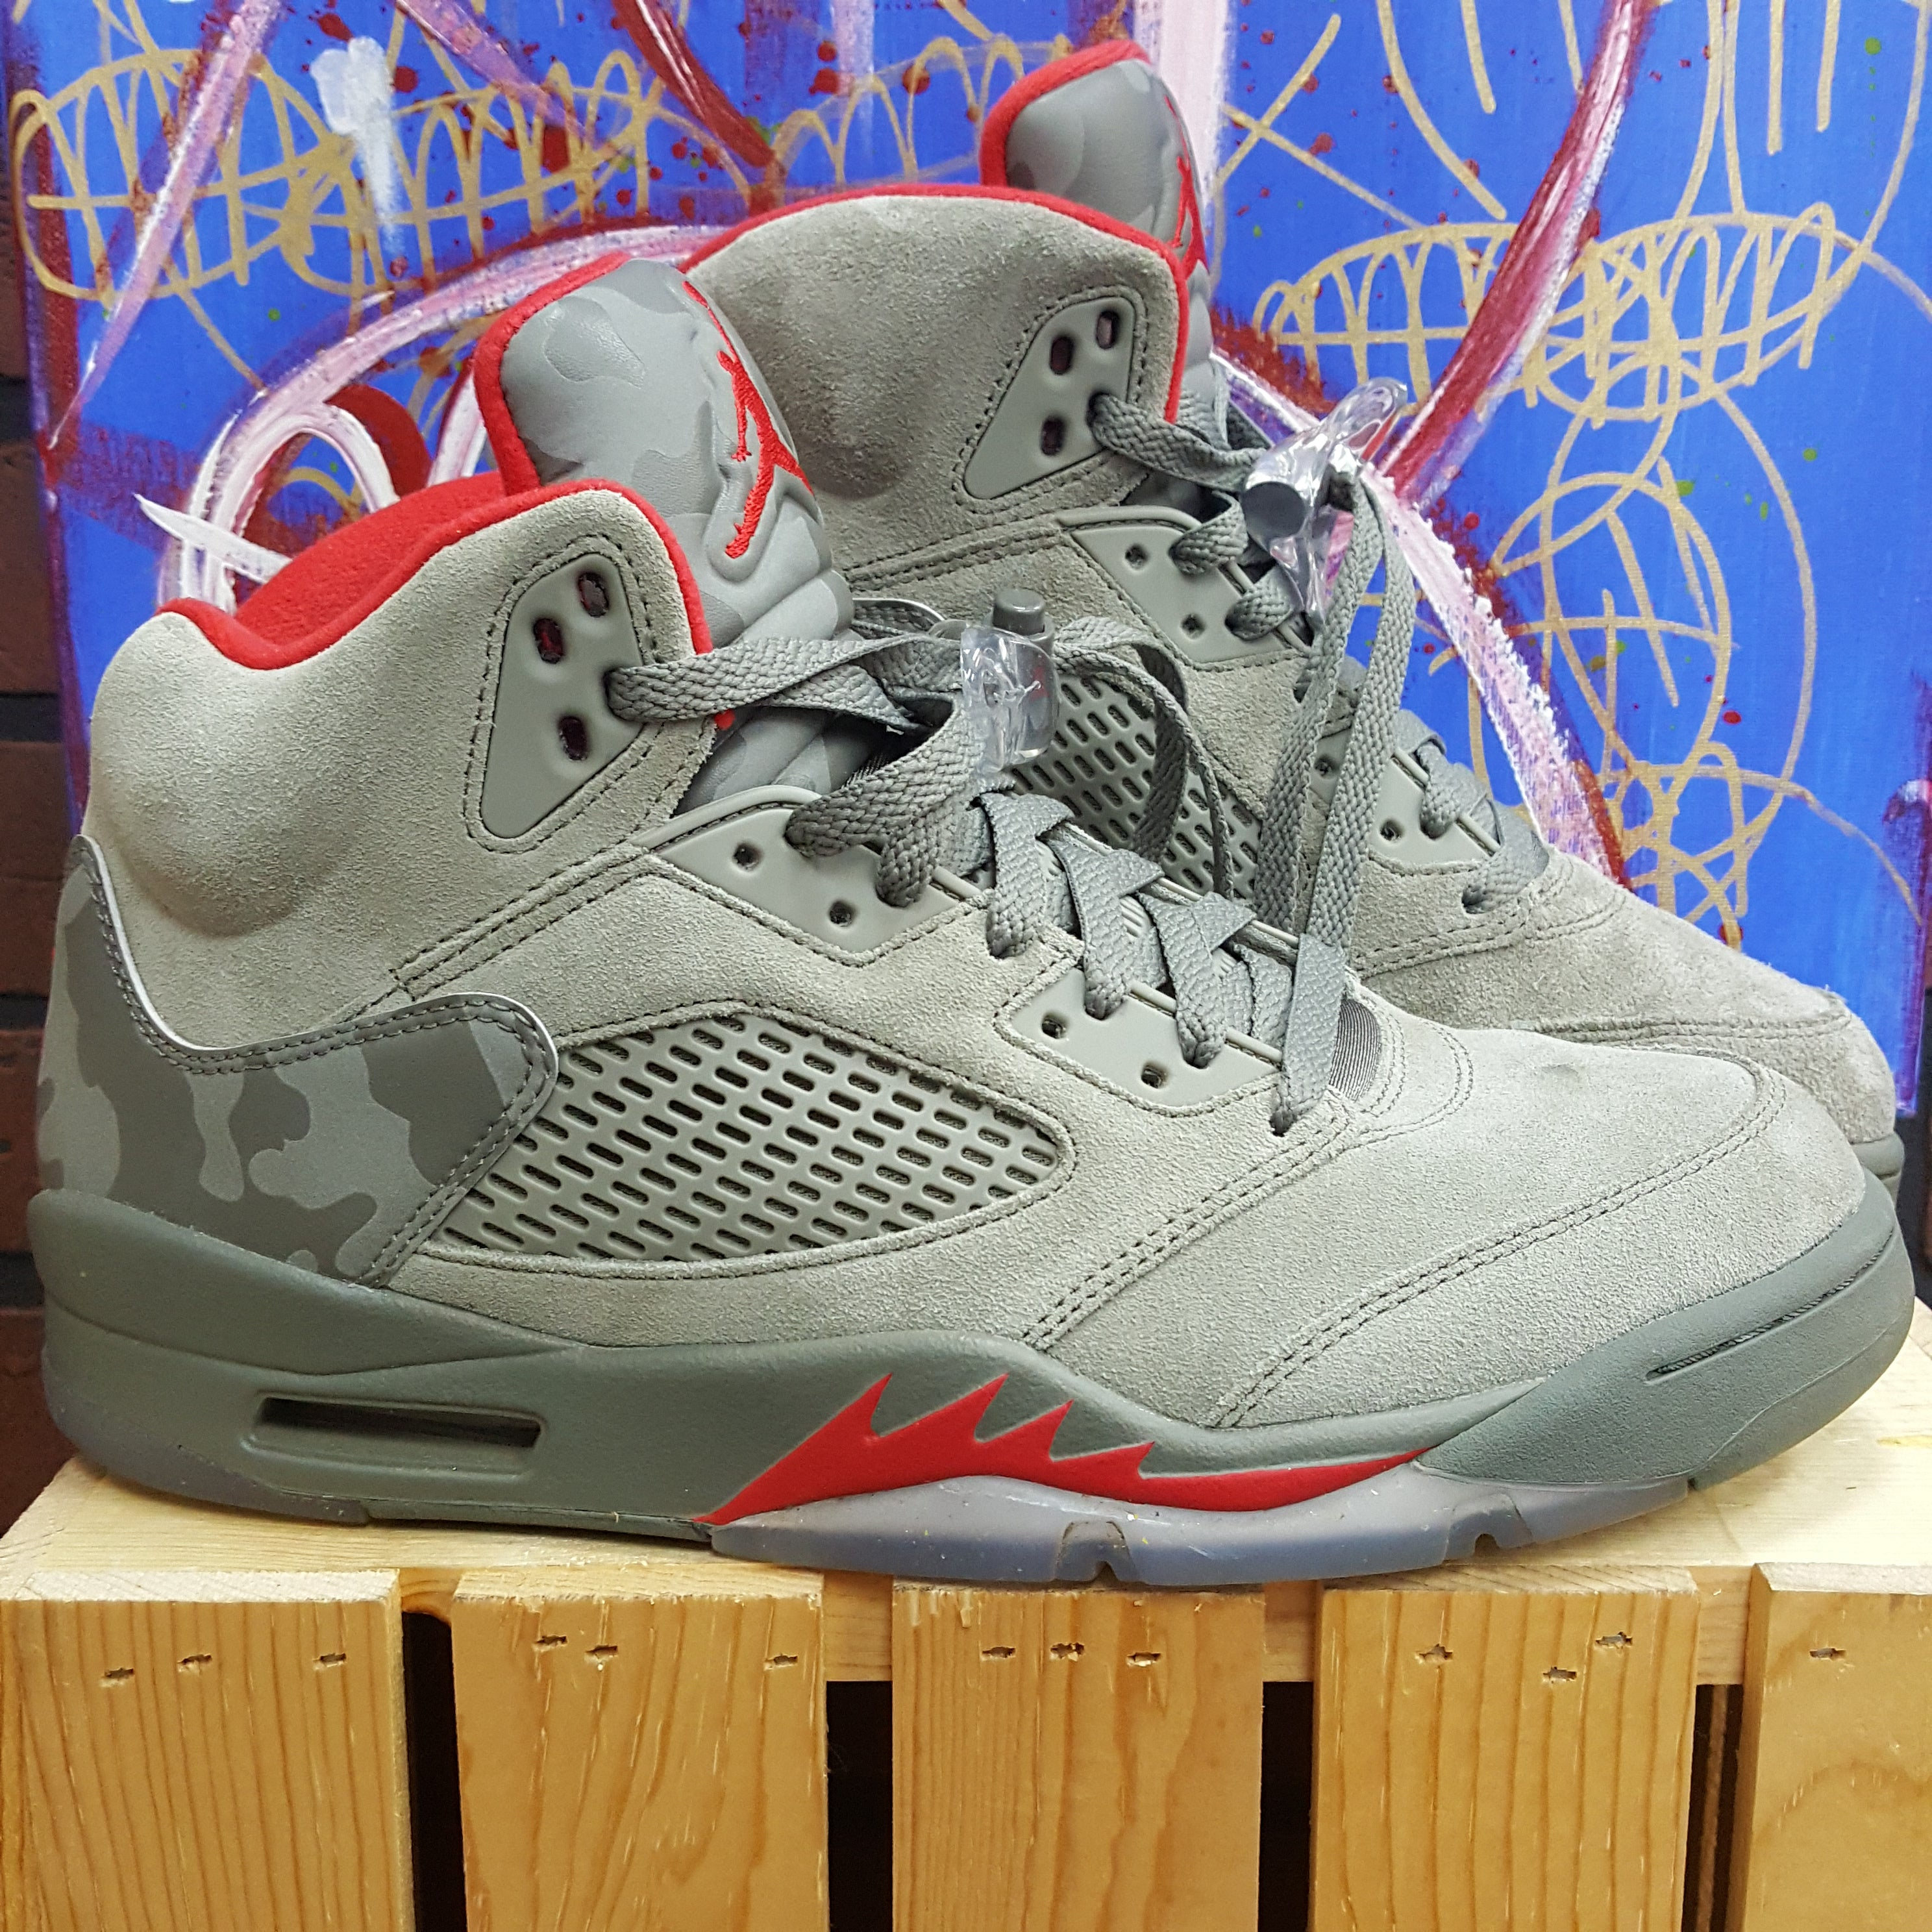 8989bda30aec07 ... coupon code for air jordan 5 camo suede size 9.5 5eea1 47e08